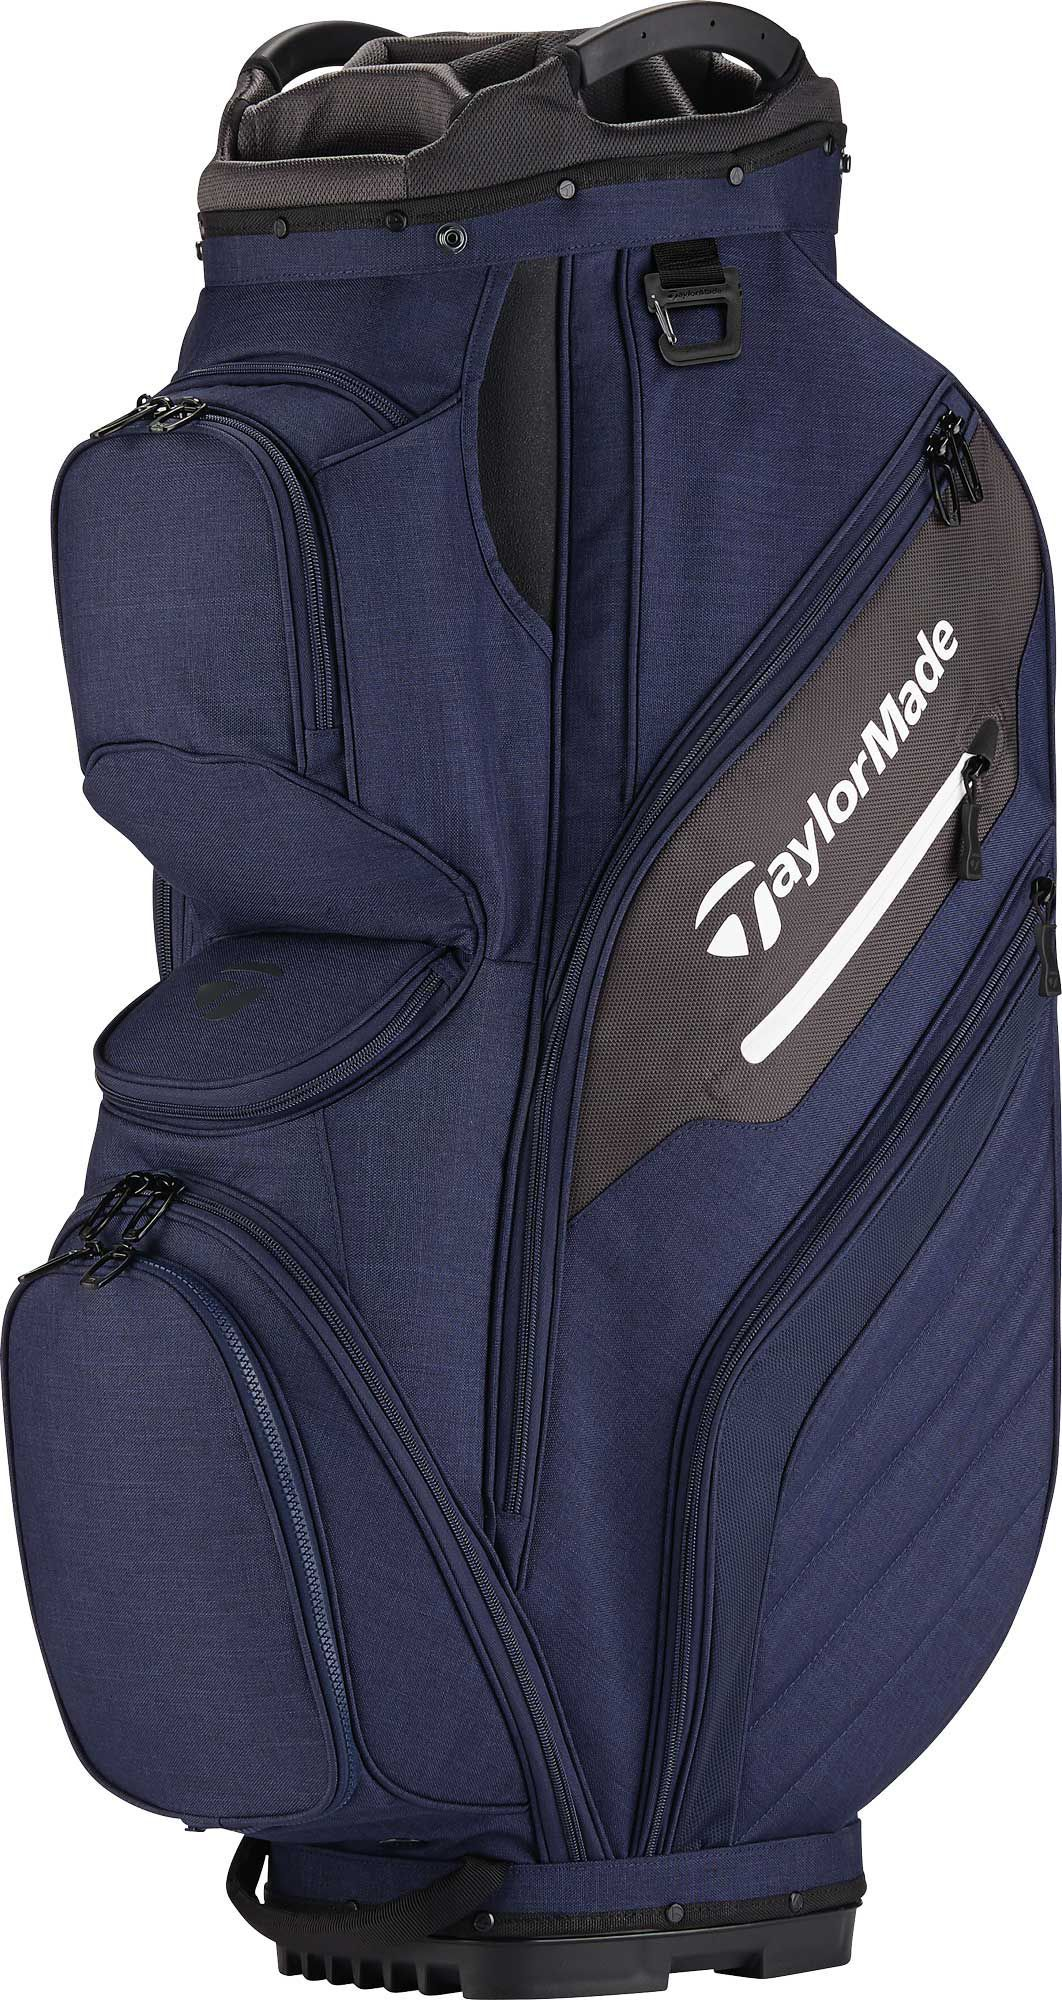 a0b4dd70c0 TaylorMade 2018 Supreme Cart Bag | Products | Bags, Taylormade, Cart